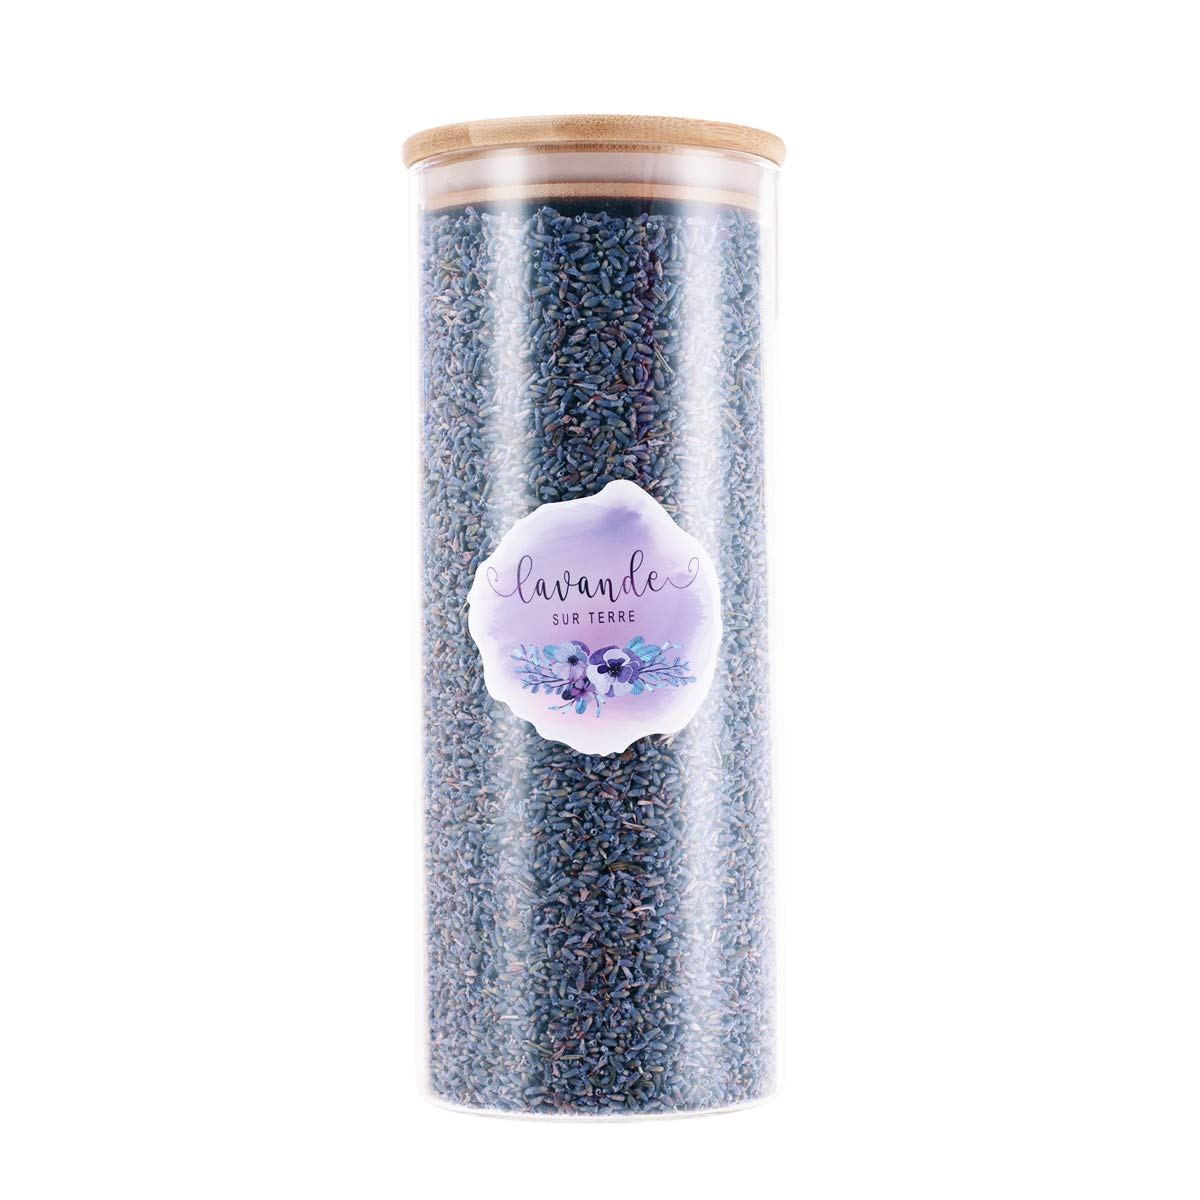 D'vine Dev 8 Cups Ultra-Blue Grade Culinary Lavender in Large Glass Bottle - Highland Grow Dried Lavender Flower Buds with Easy Resealable Huge Glass Bottle - by Lavande Sur Terre by D'vine Dev